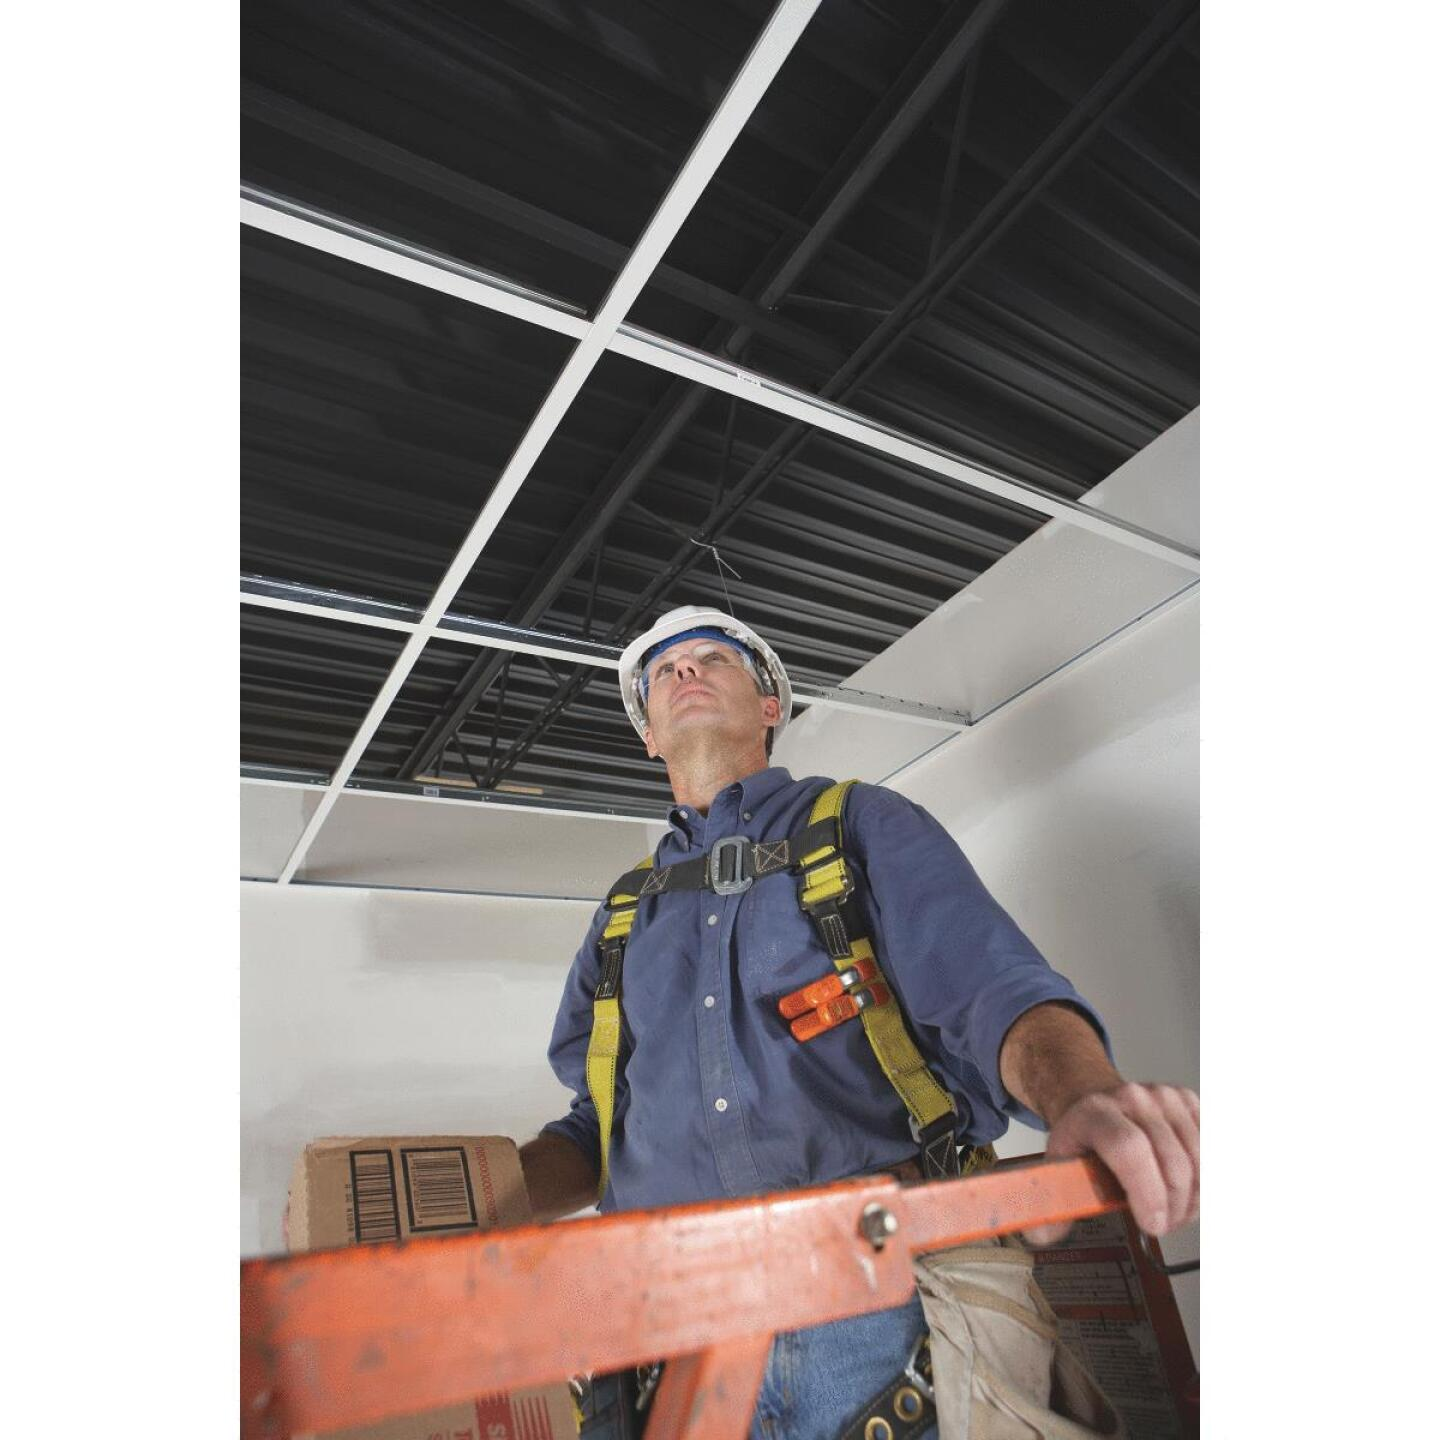 Donn 4 Ft. x 1-1/2 In. White Steel Fire Resistant Ceiling Tile Cross Tee Image 2